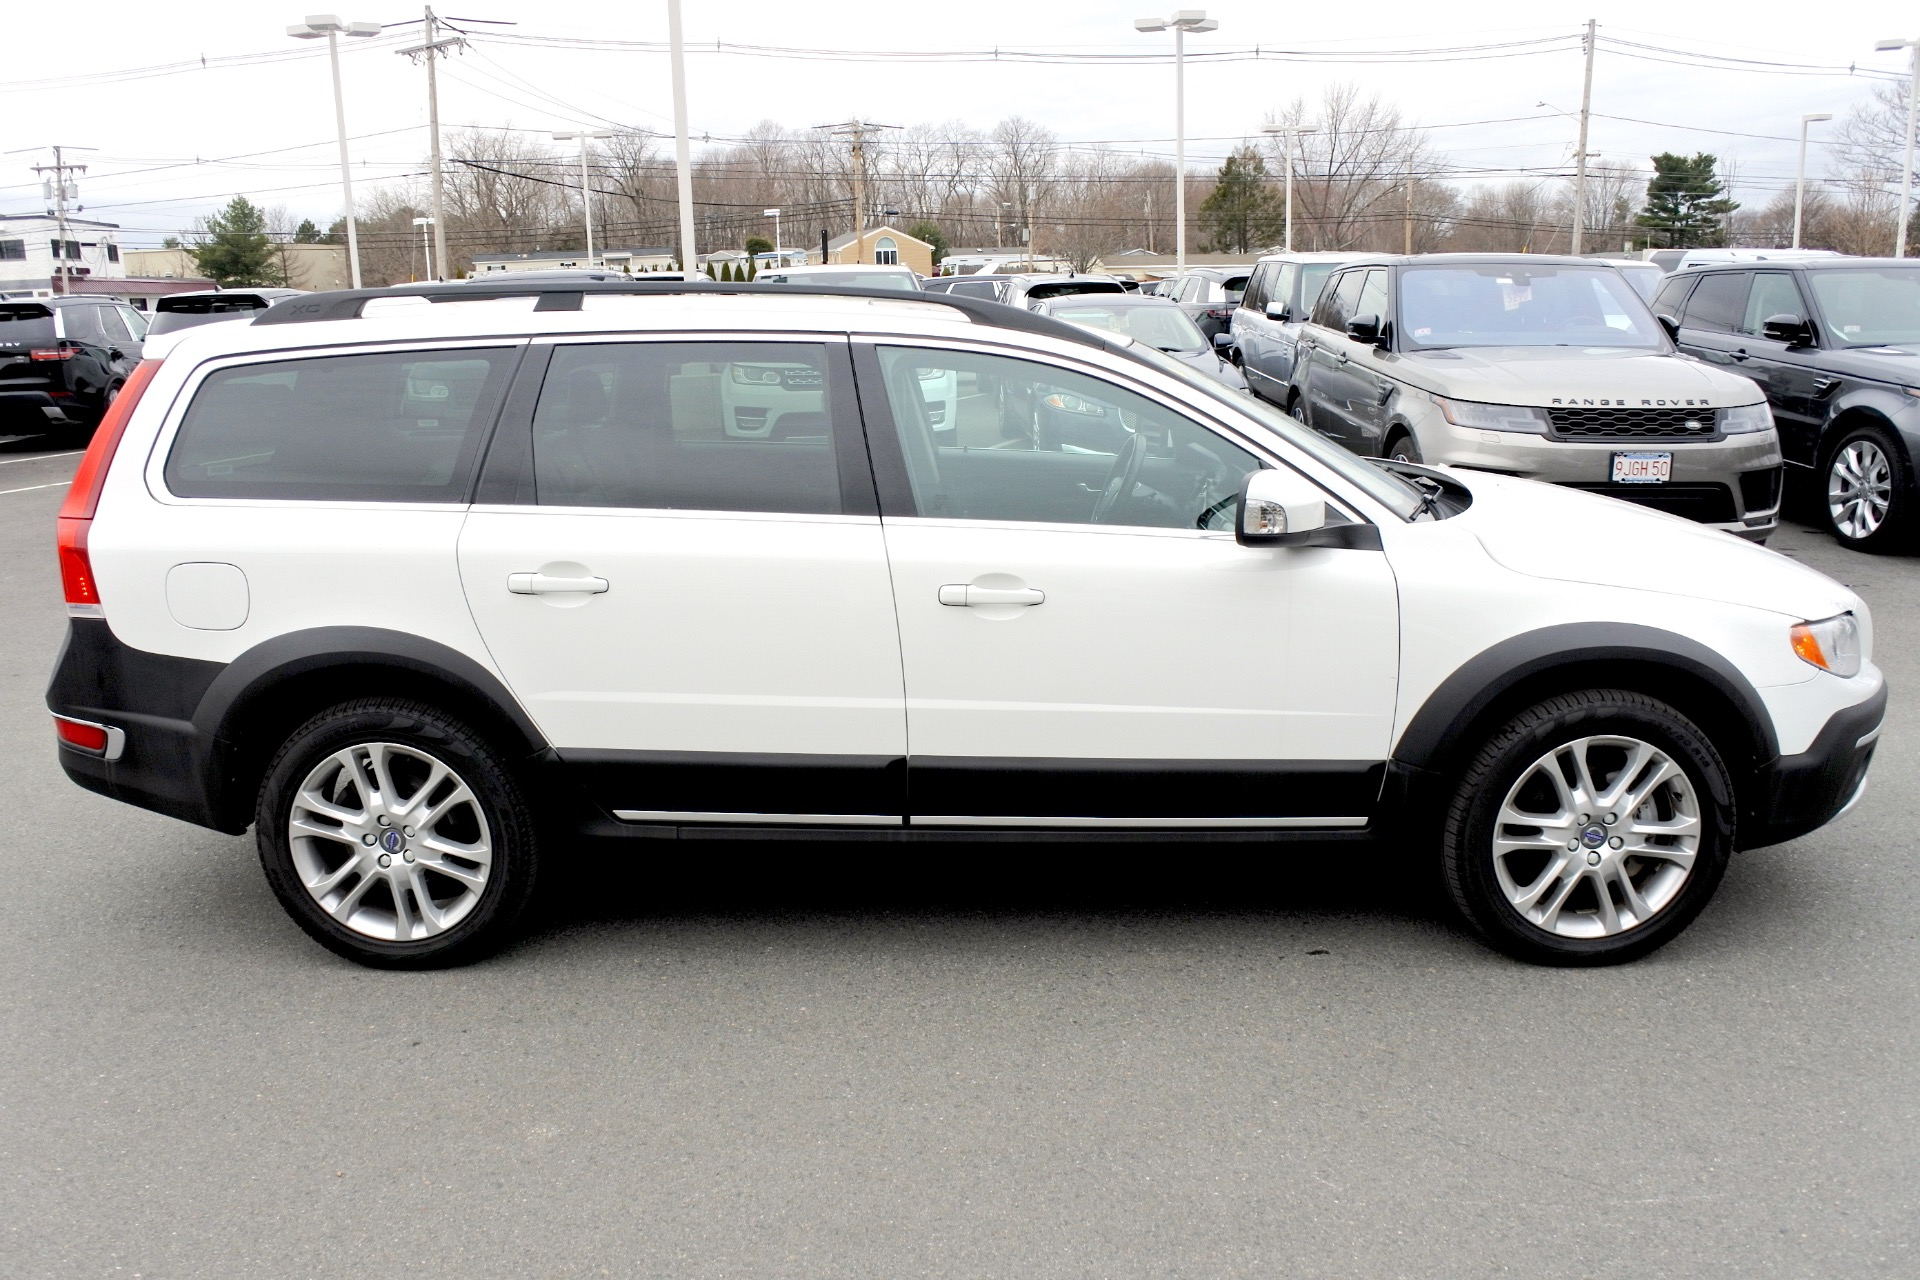 Used 2016 Volvo Xc70 T5 Premier AWD Used 2016 Volvo Xc70 T5 Premier AWD for sale  at Metro West Motorcars LLC in Shrewsbury MA 6